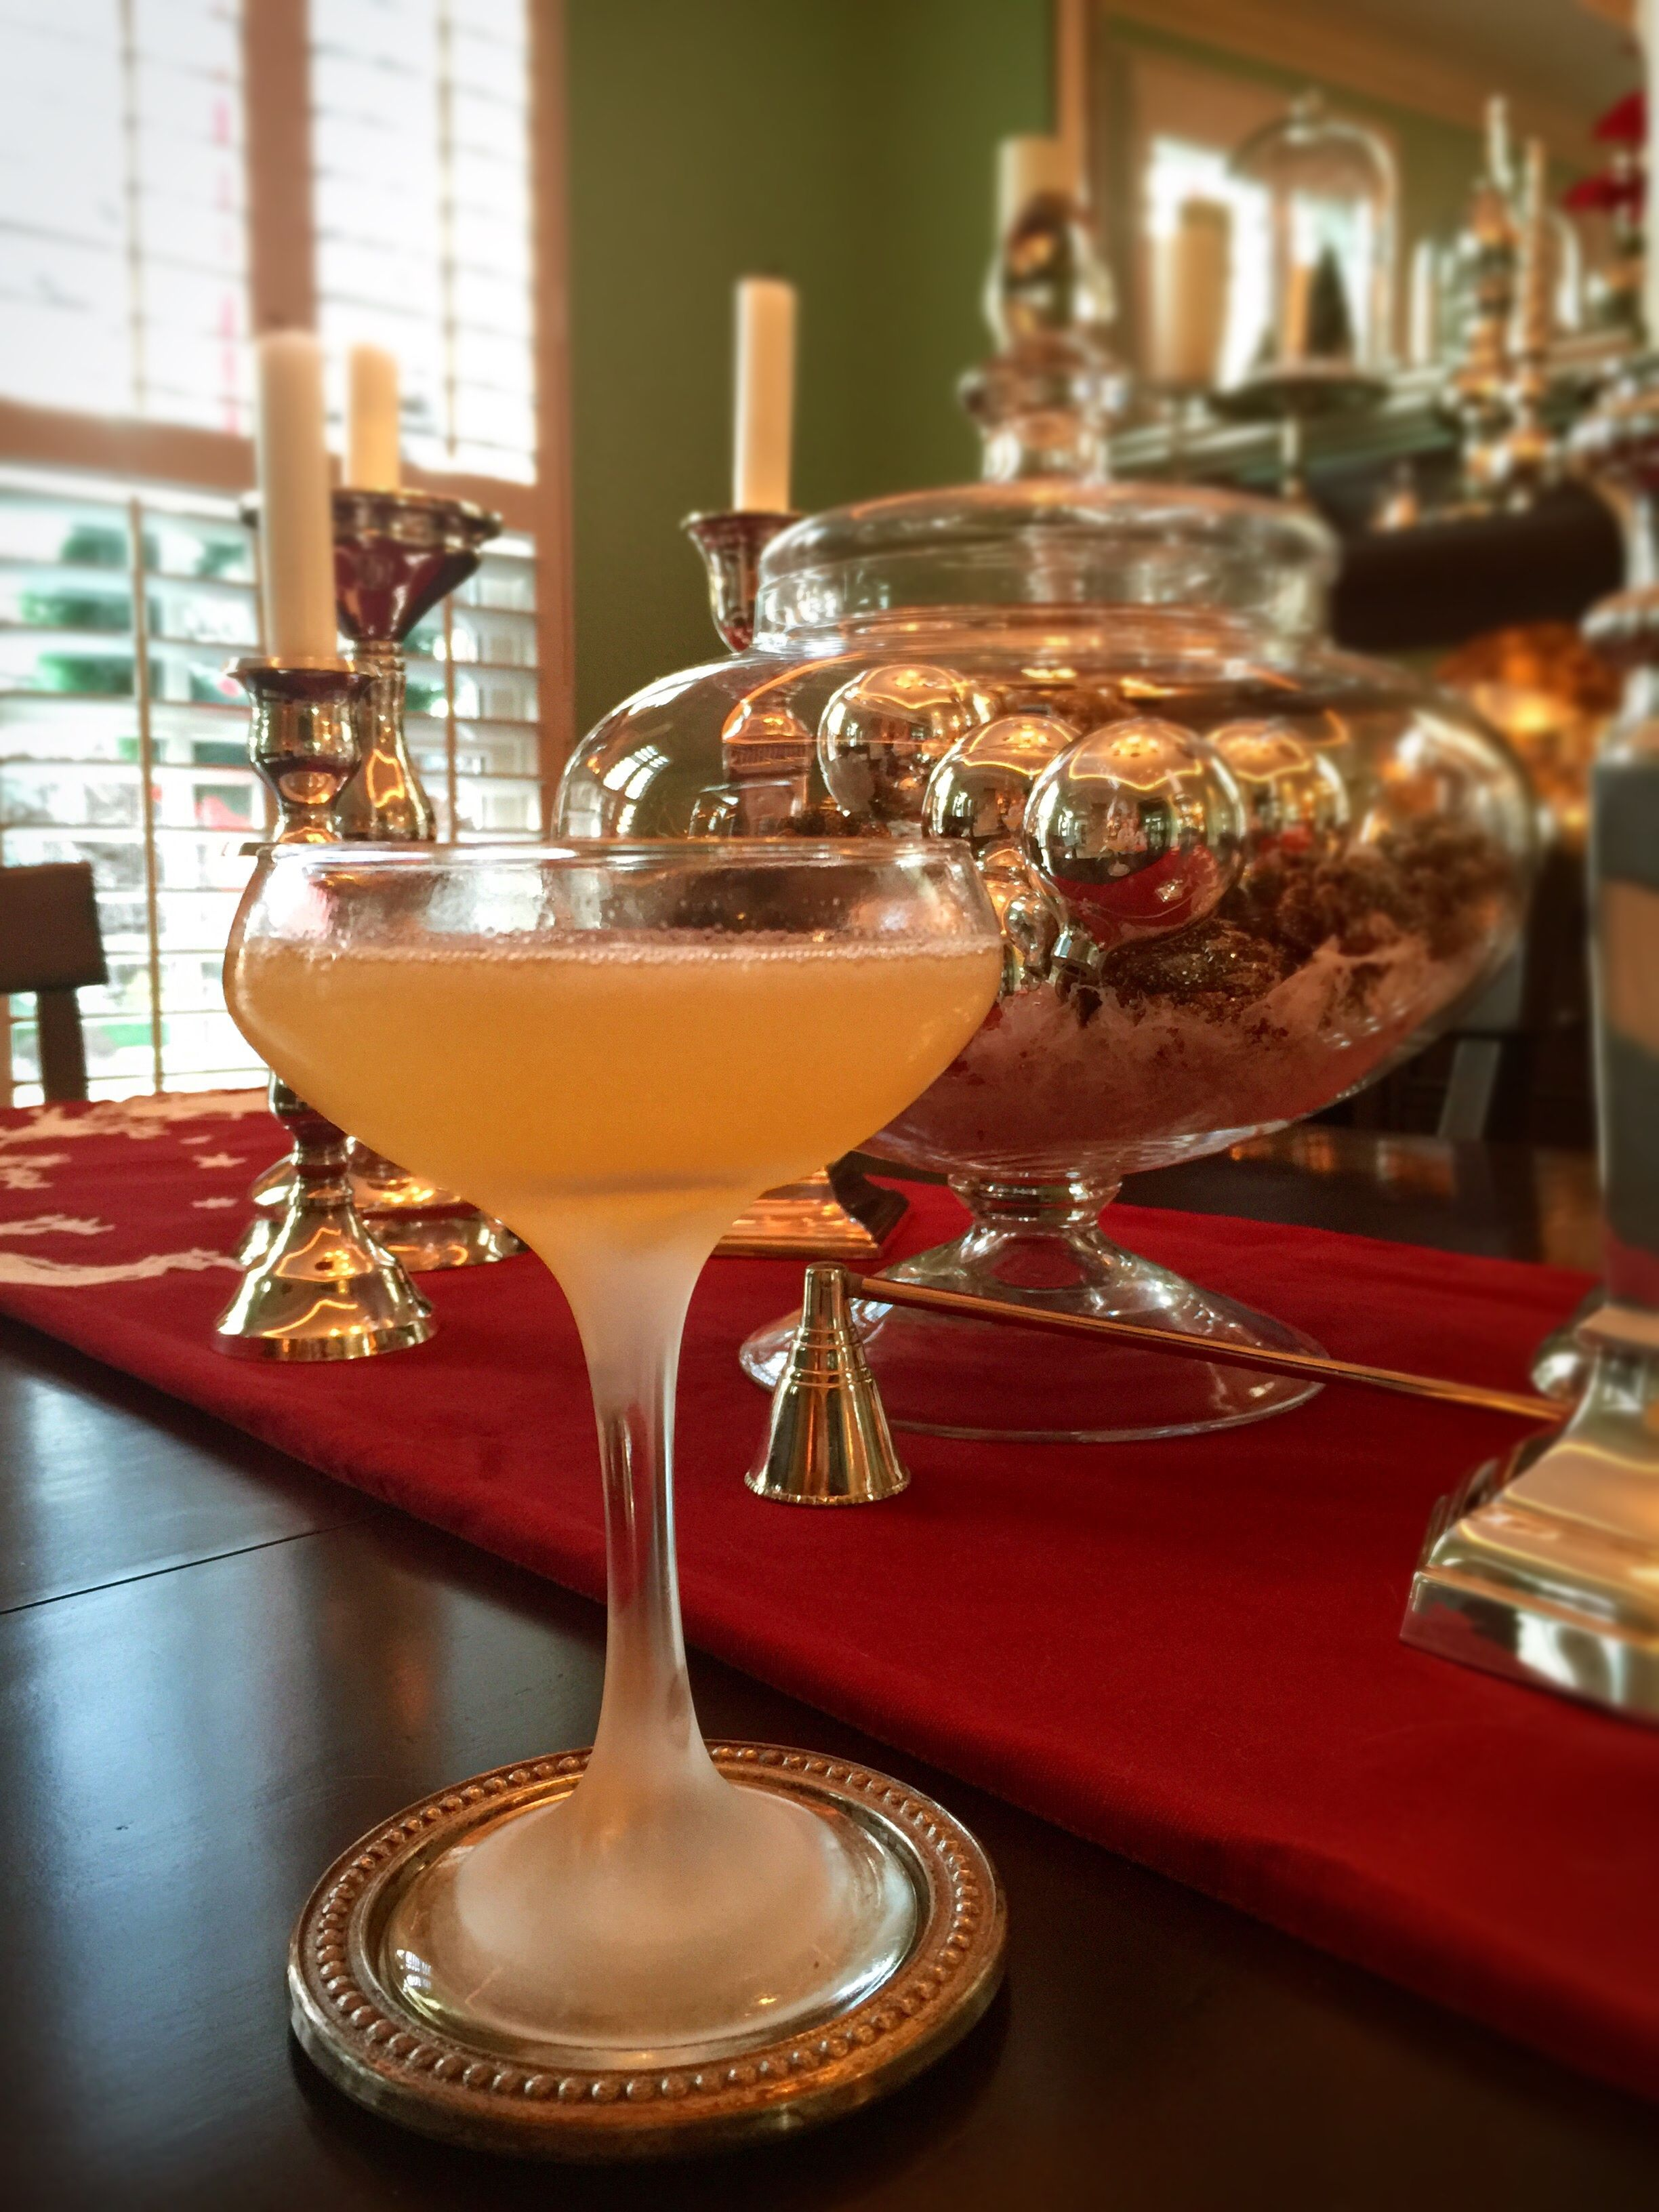 Today S Featured Cocktail The Oldest Living Confederate Widow Gin Honey Syrup Lemon Orange Bitters And A Splash Of Absinthe Mak Cocktails Drinks Bartender